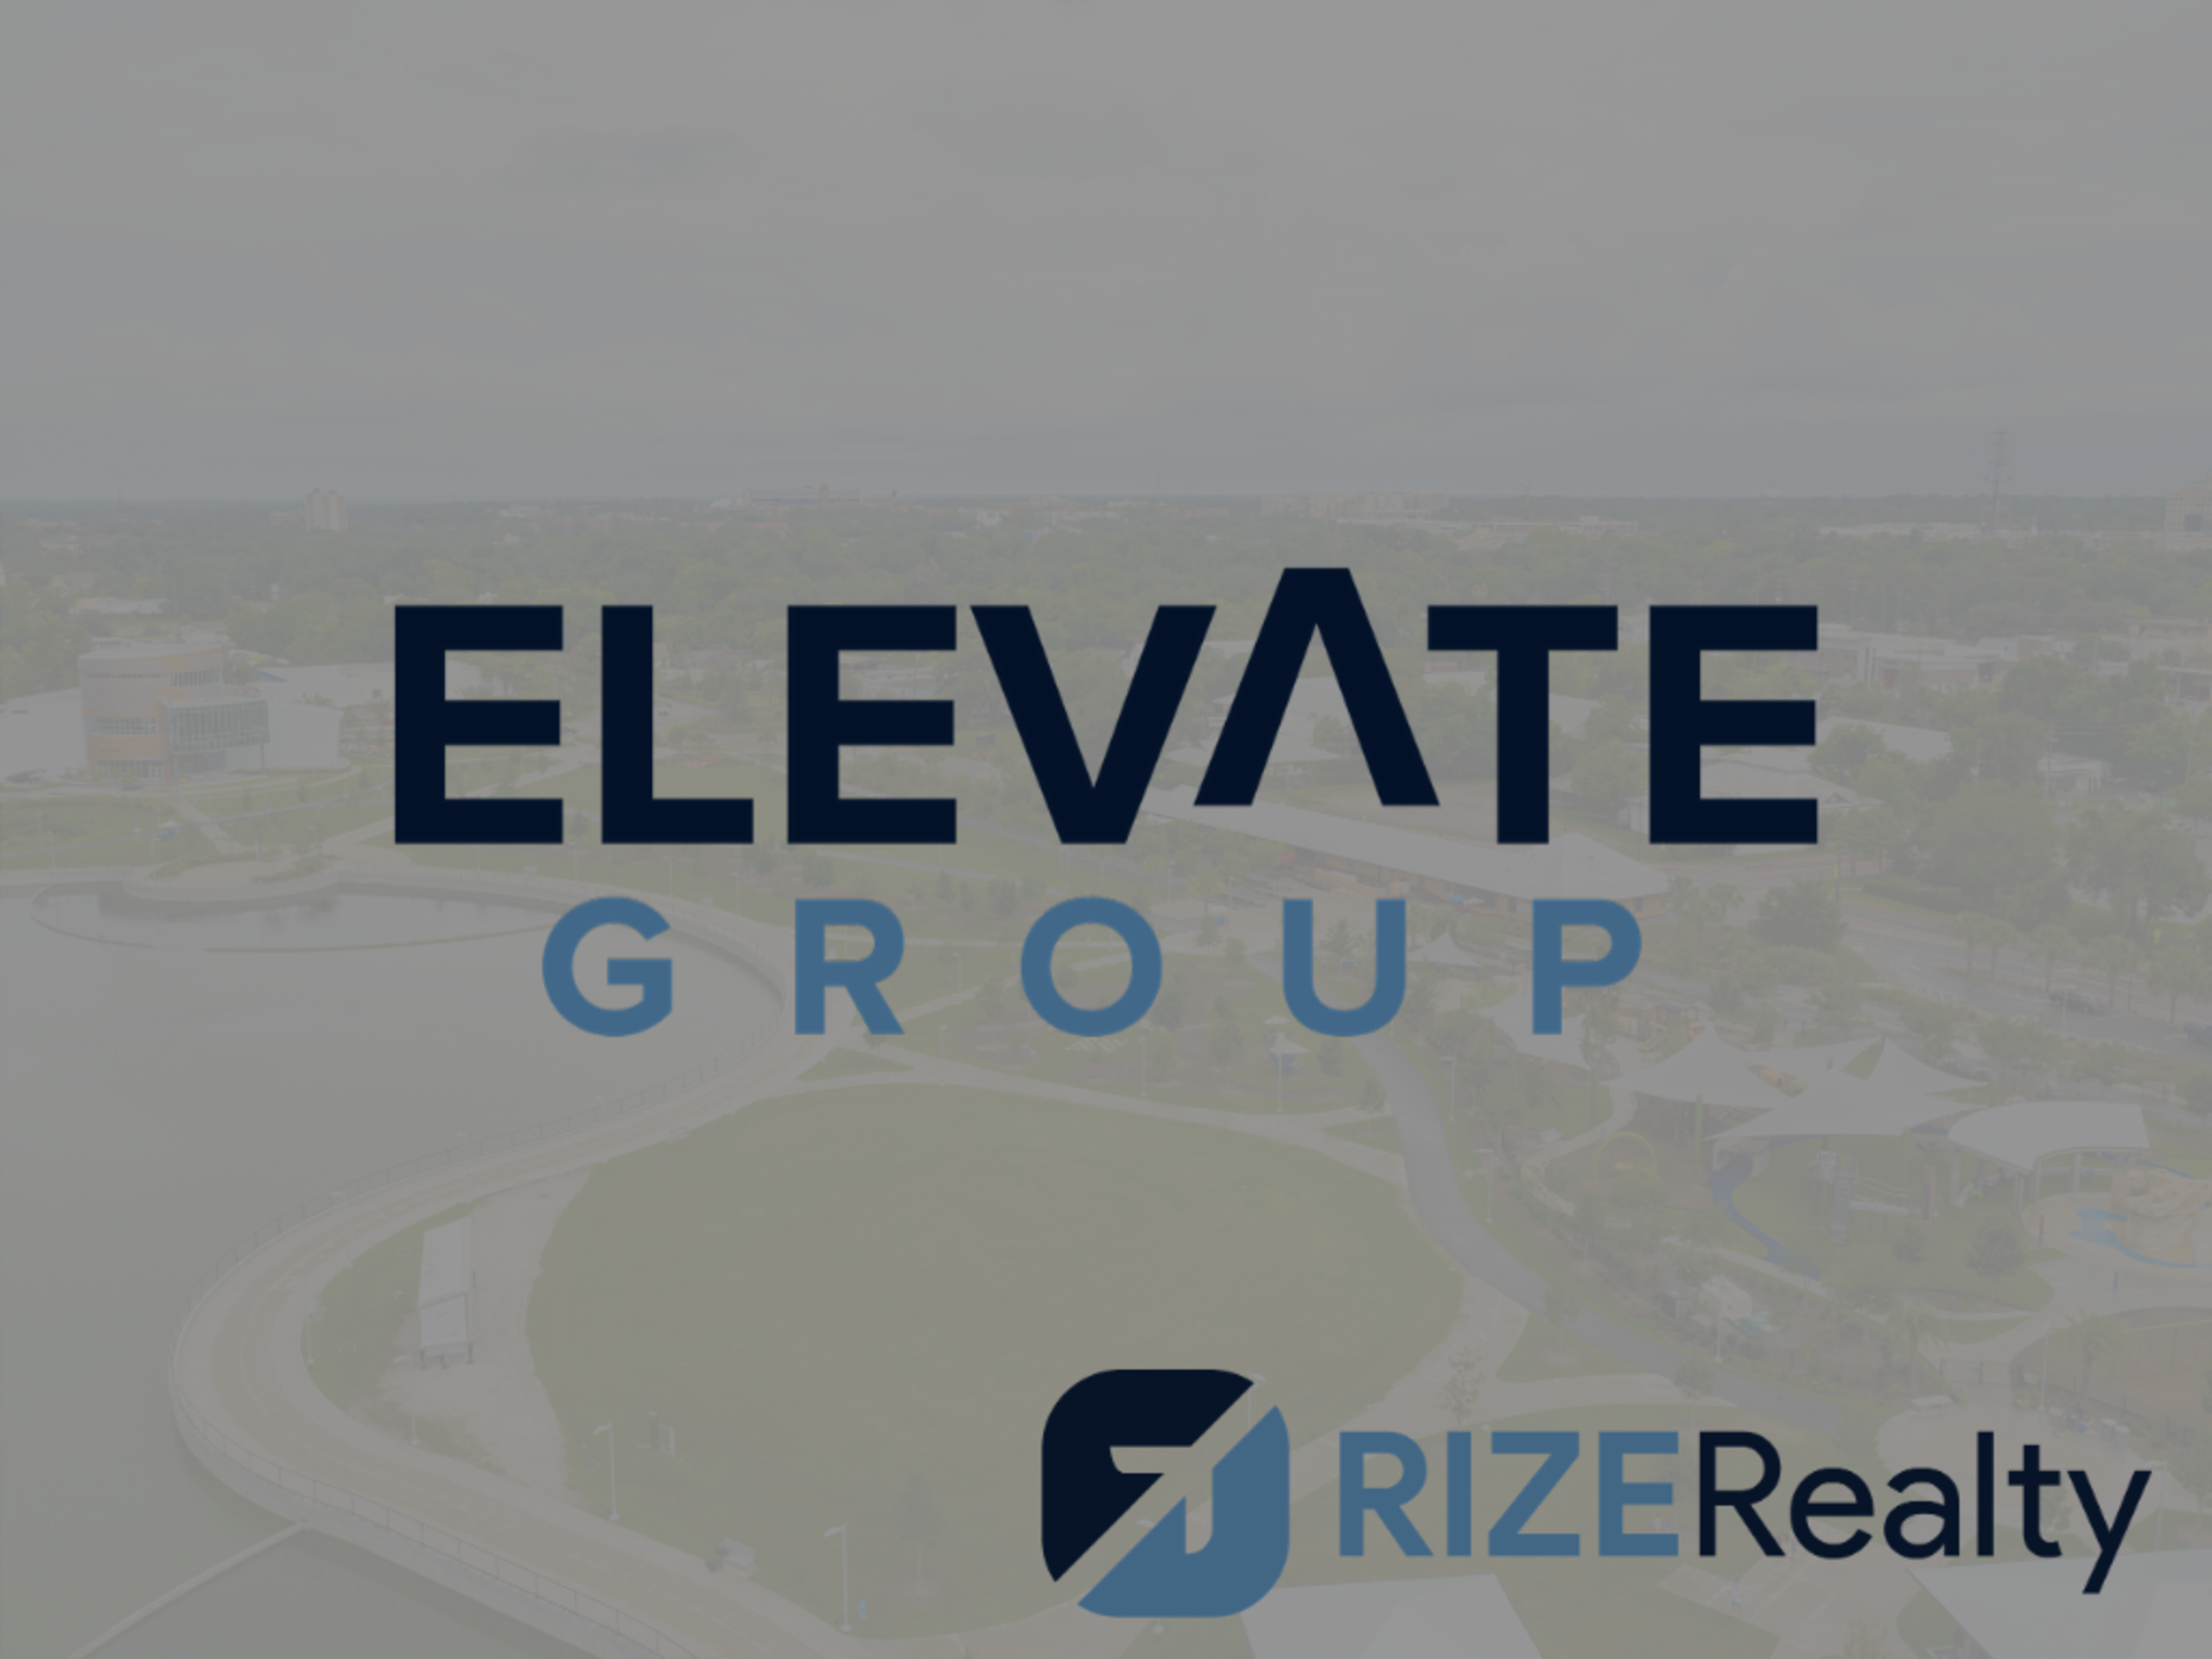 Elevate Group Launches at Rize Realty